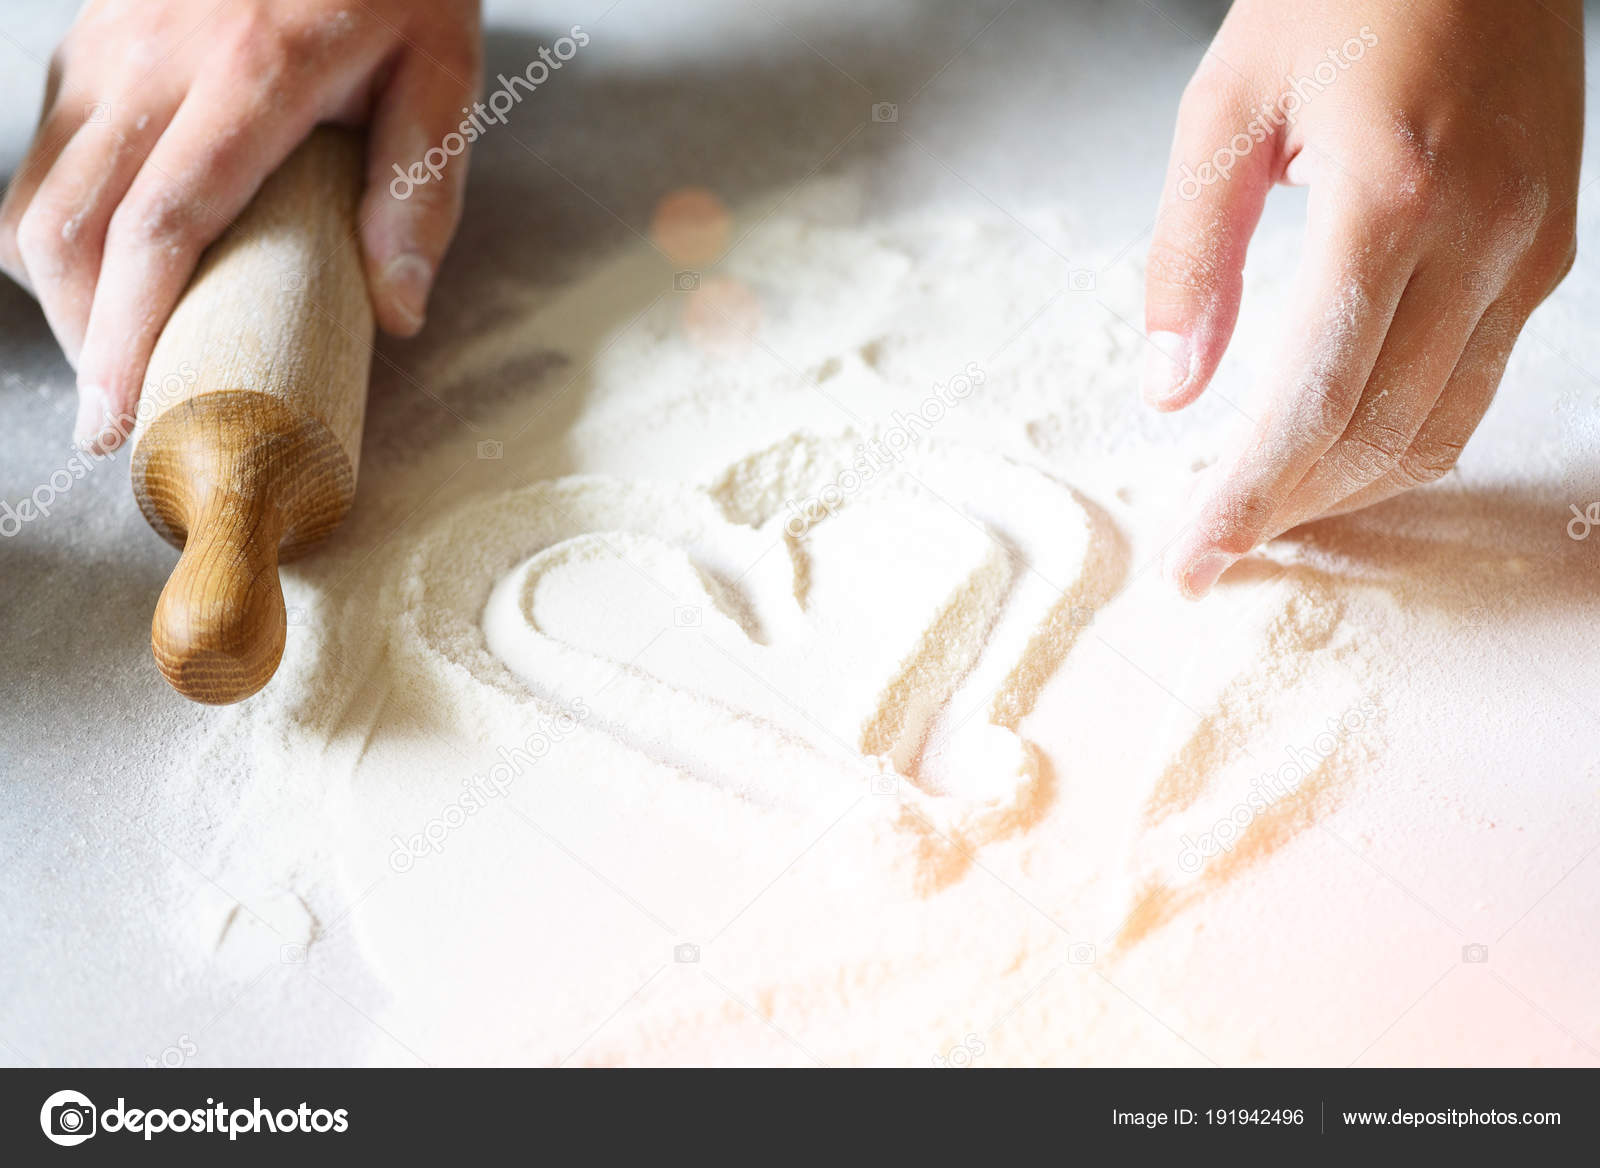 Heart of flour  Baking background with rolling pin, eggs, milk